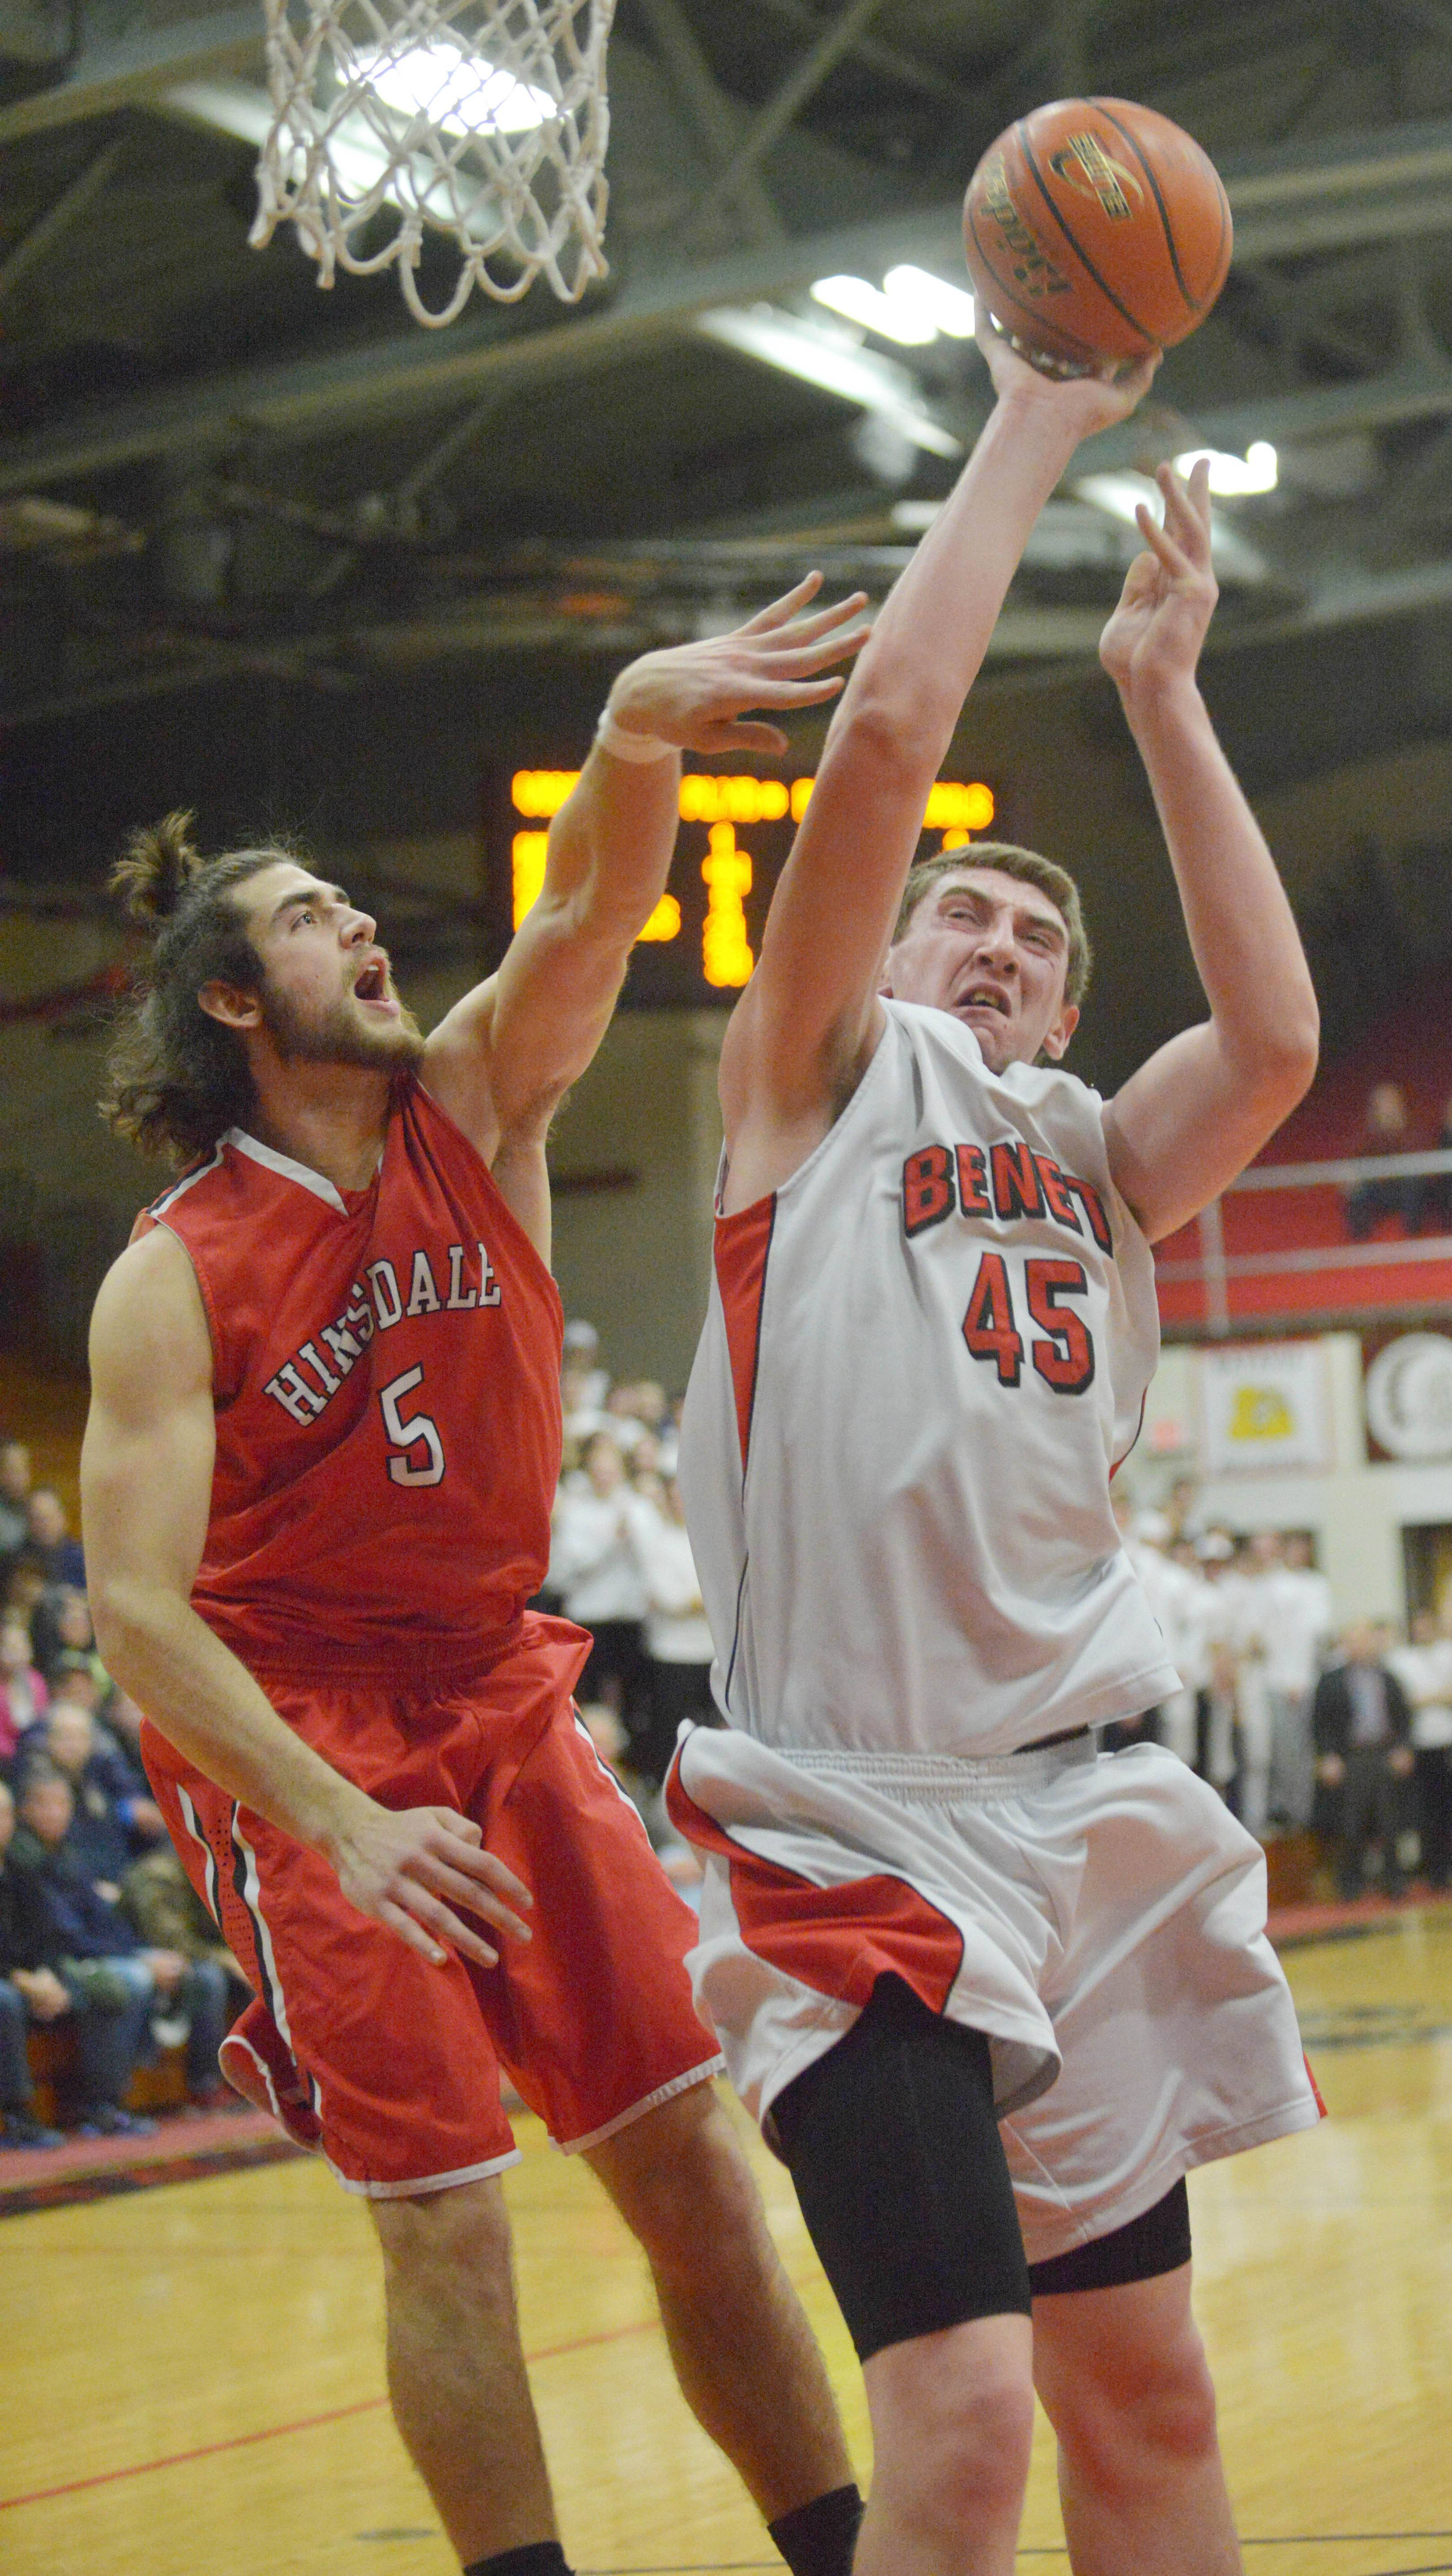 (5) Ian bunting of Hinsdale Central and (45) Sean O'Mara of Benet work the net during the Benet vs. Hinsdale Central at Class 4A East Aurora boys basketball sectional semifinal Tuesday.